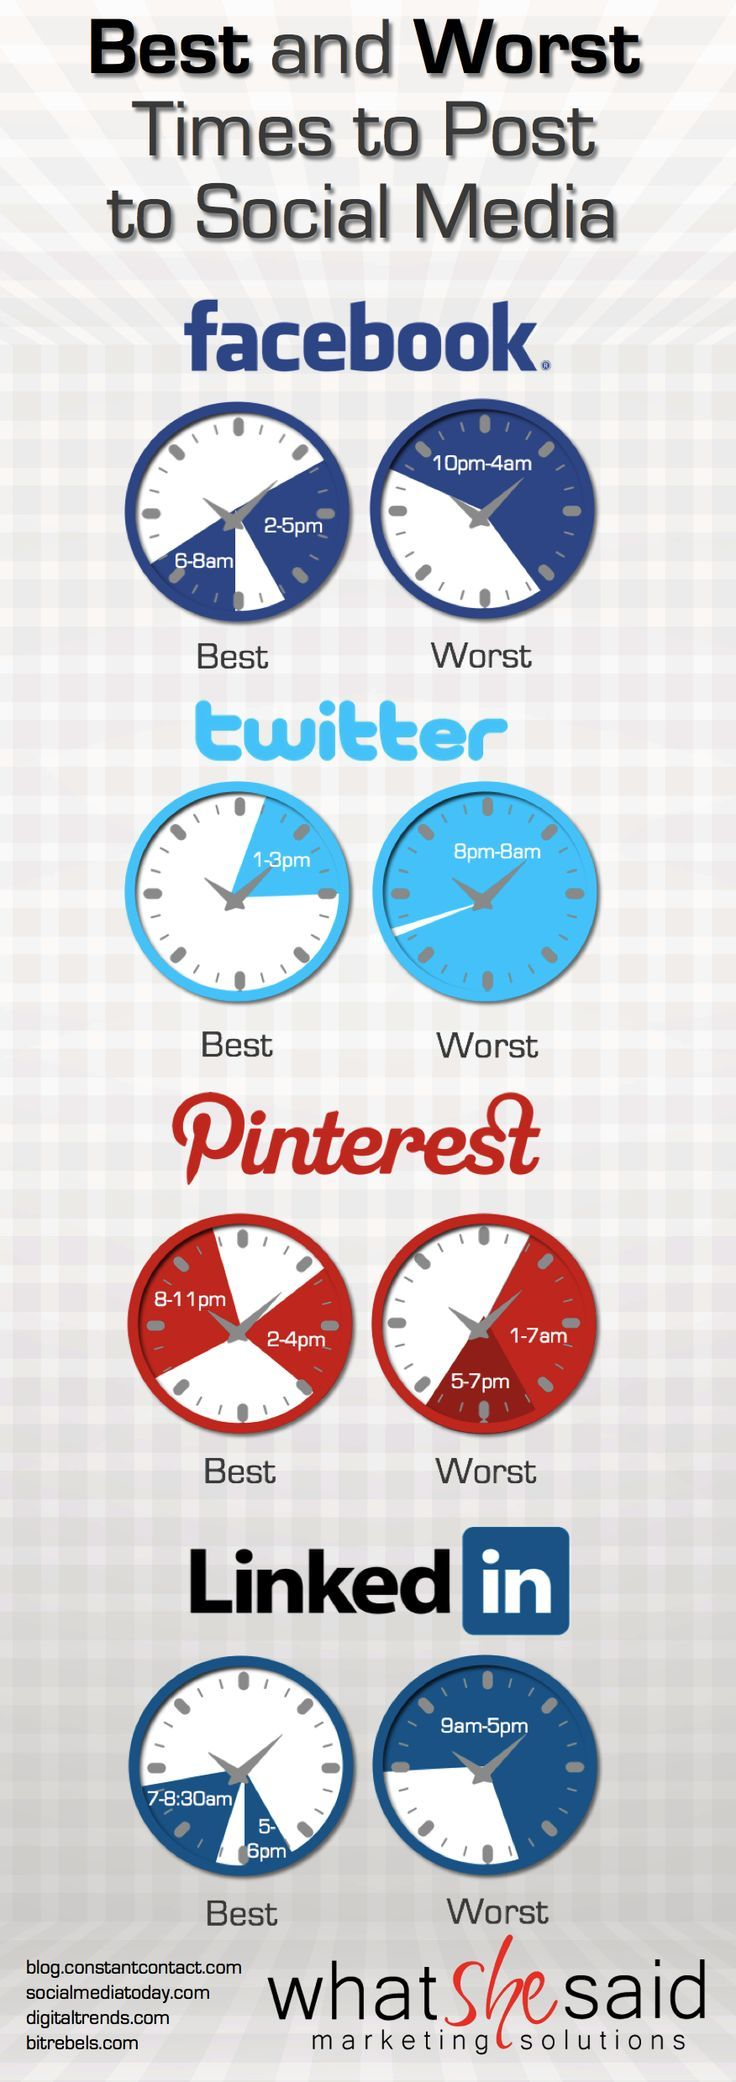 Best and Worst Time to Post Social Media E5d421c9d316ce8b90fe9062fc1220cb